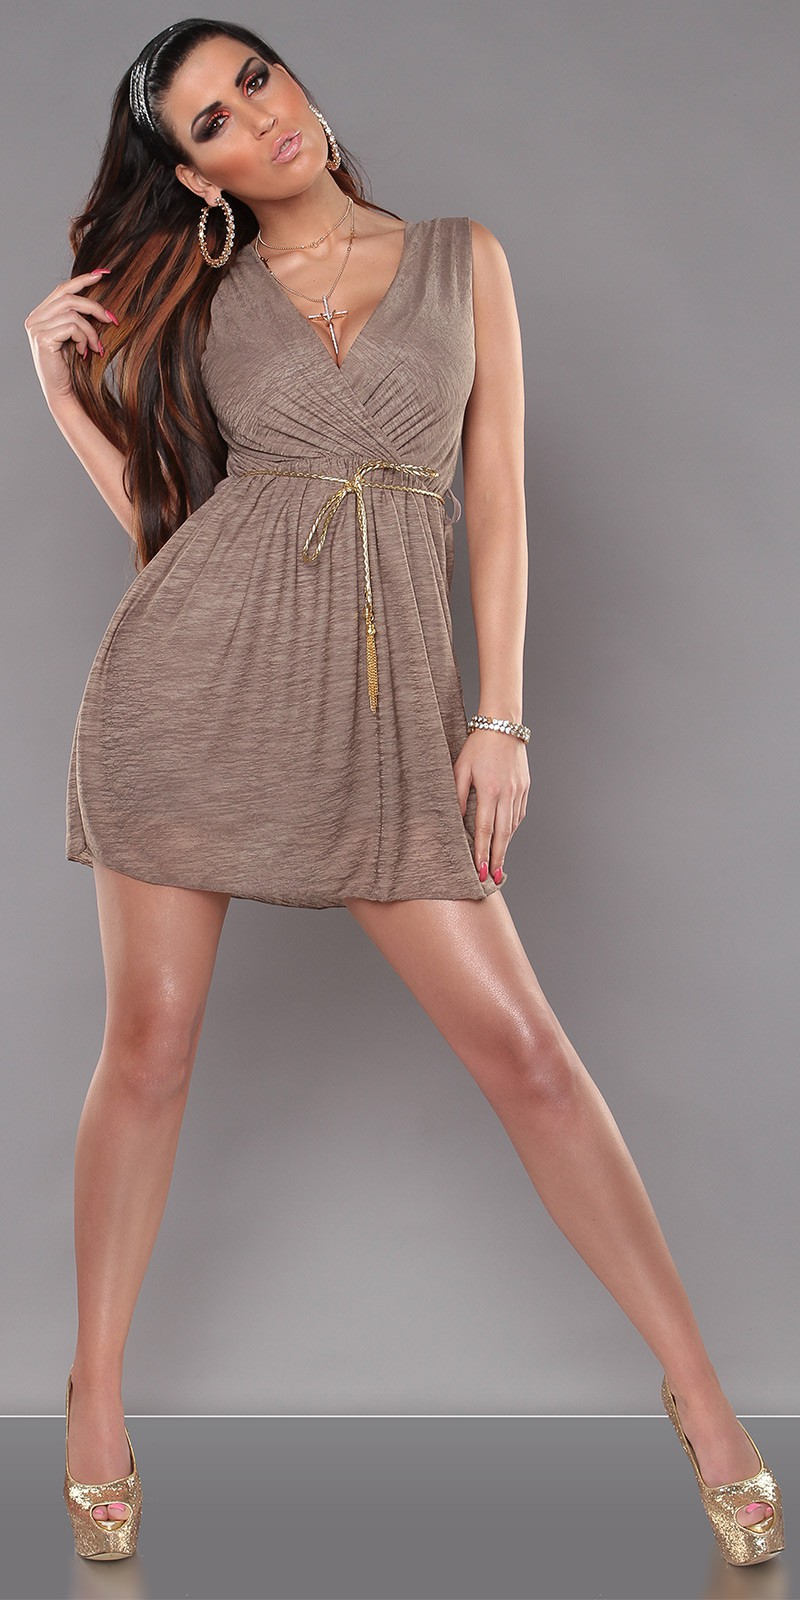 Cappuccino Sexy KouCla Minidress With V-Neck And Belt